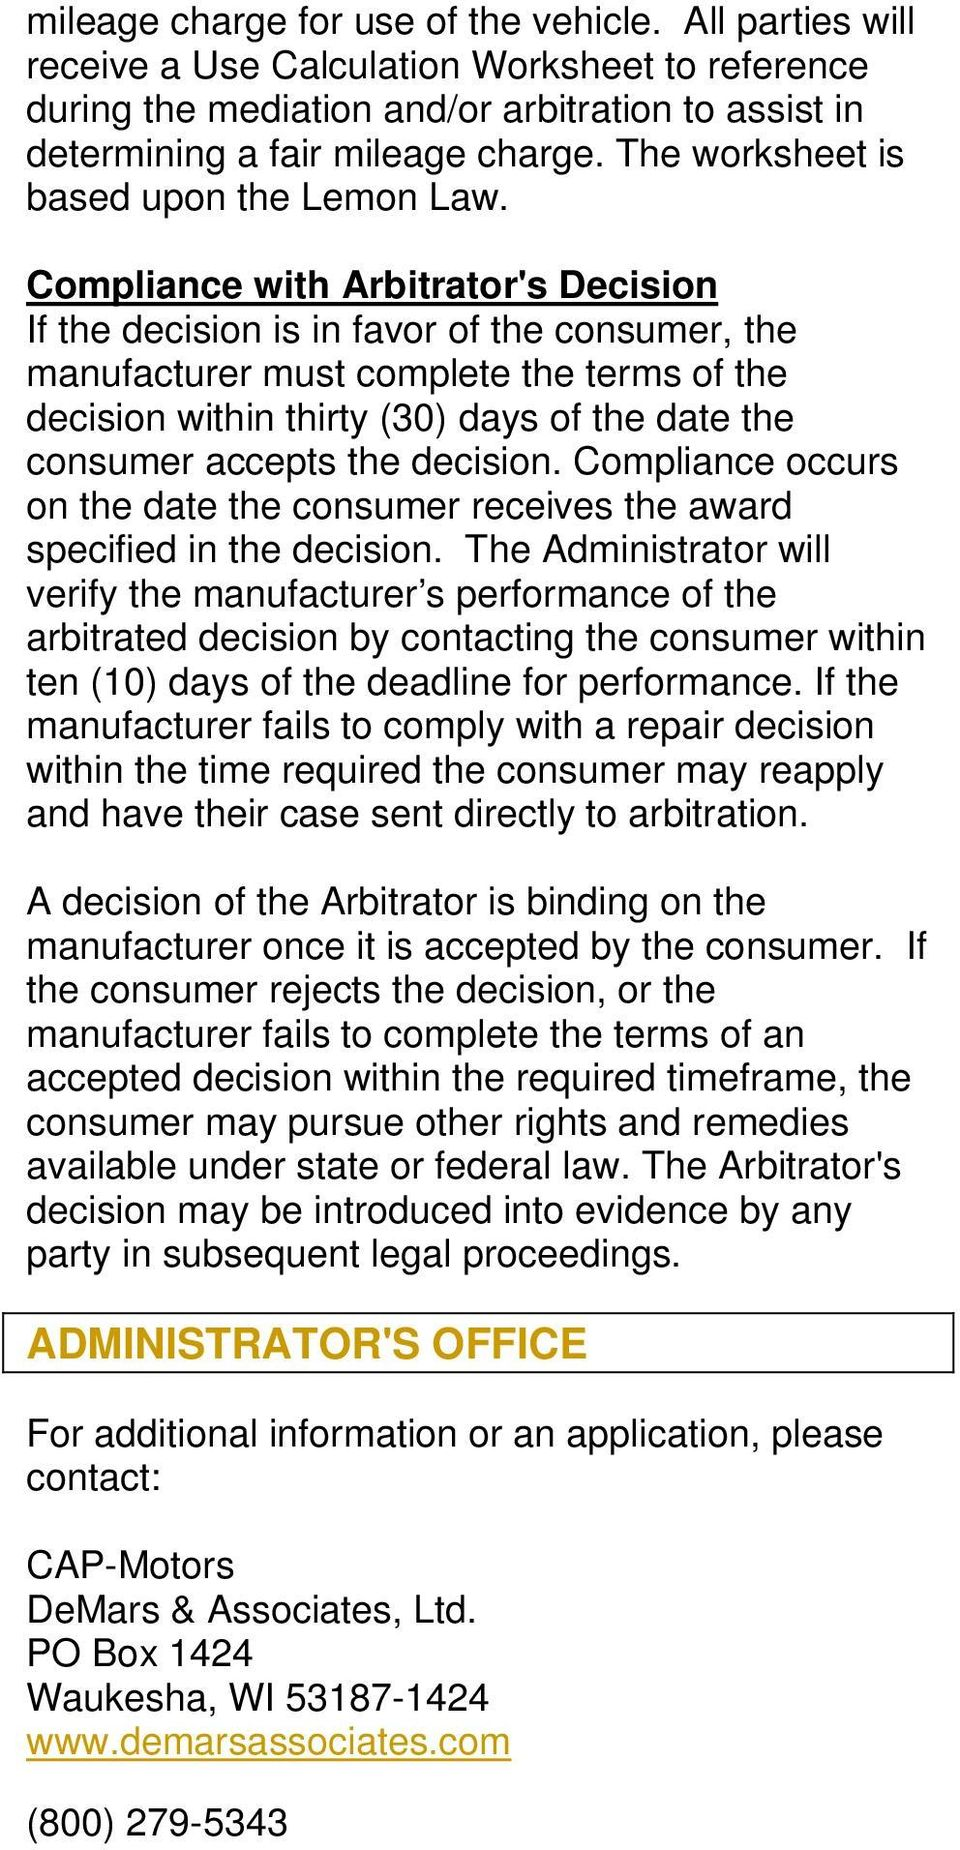 Compliance with Arbitrator's Decision If the decision is in favor of the consumer, the manufacturer must complete the terms of the decision within thirty (30) days of the date the consumer accepts